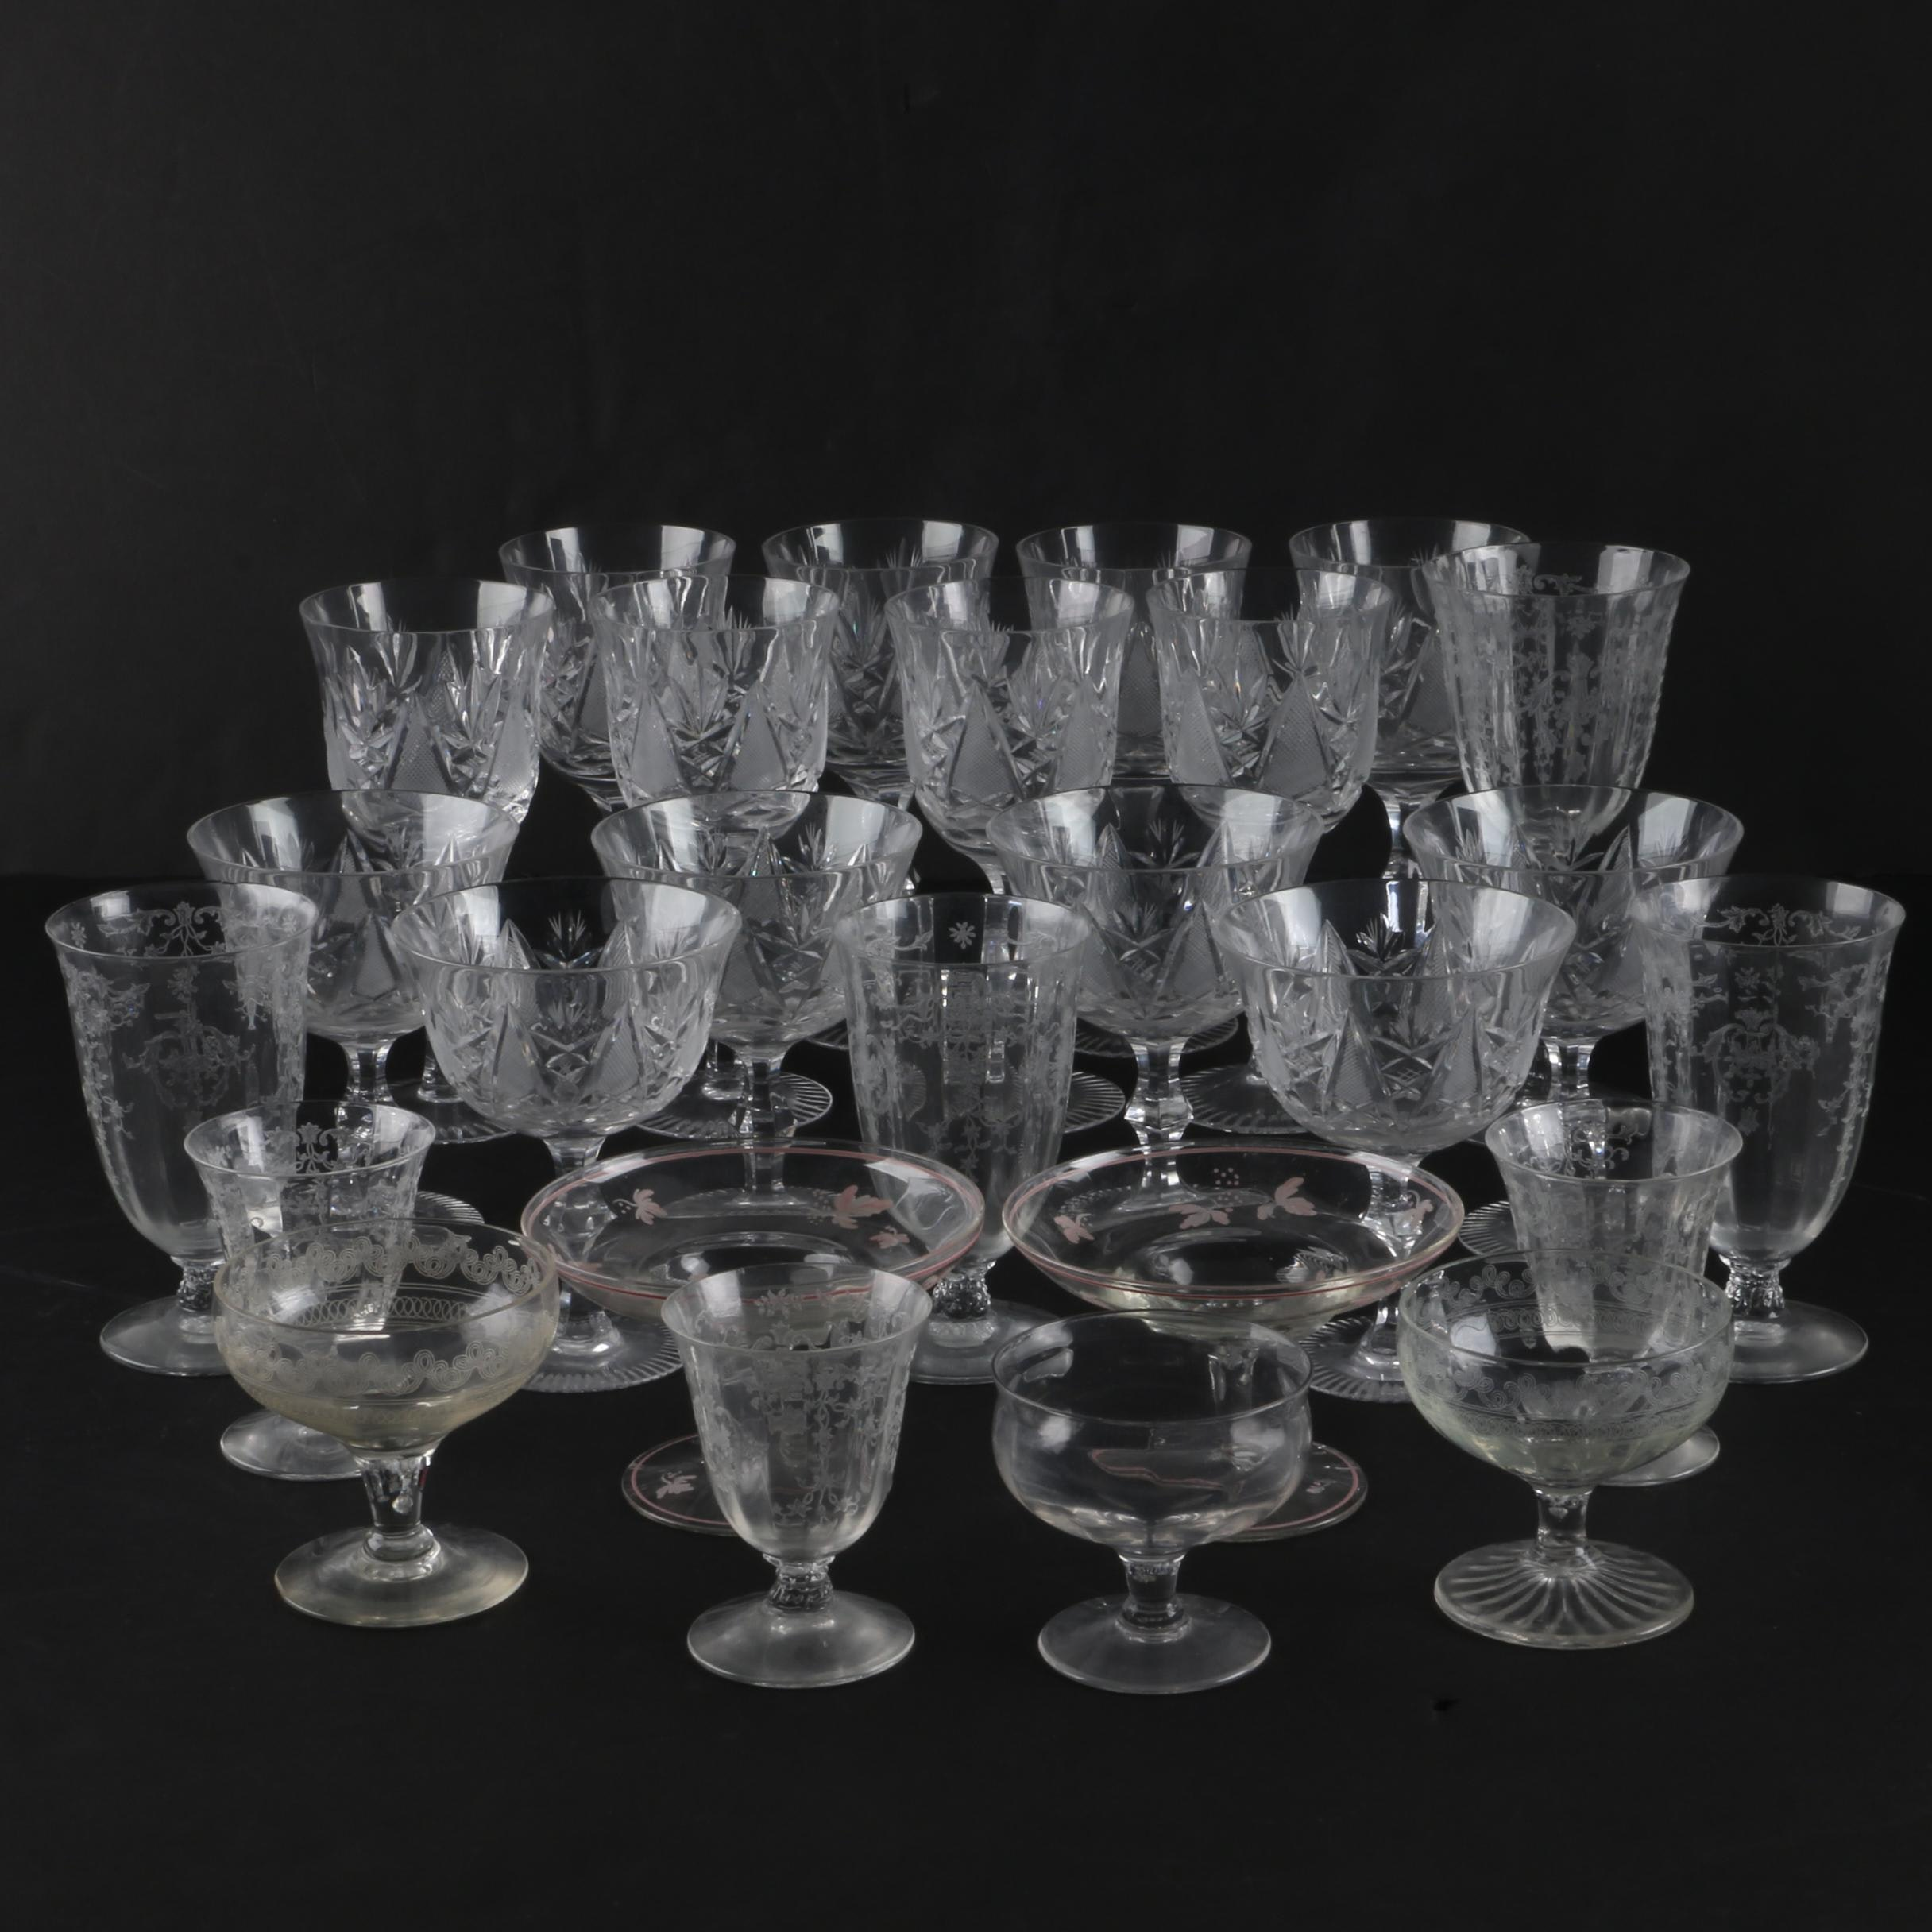 Crystal and Etched Glass Stemware